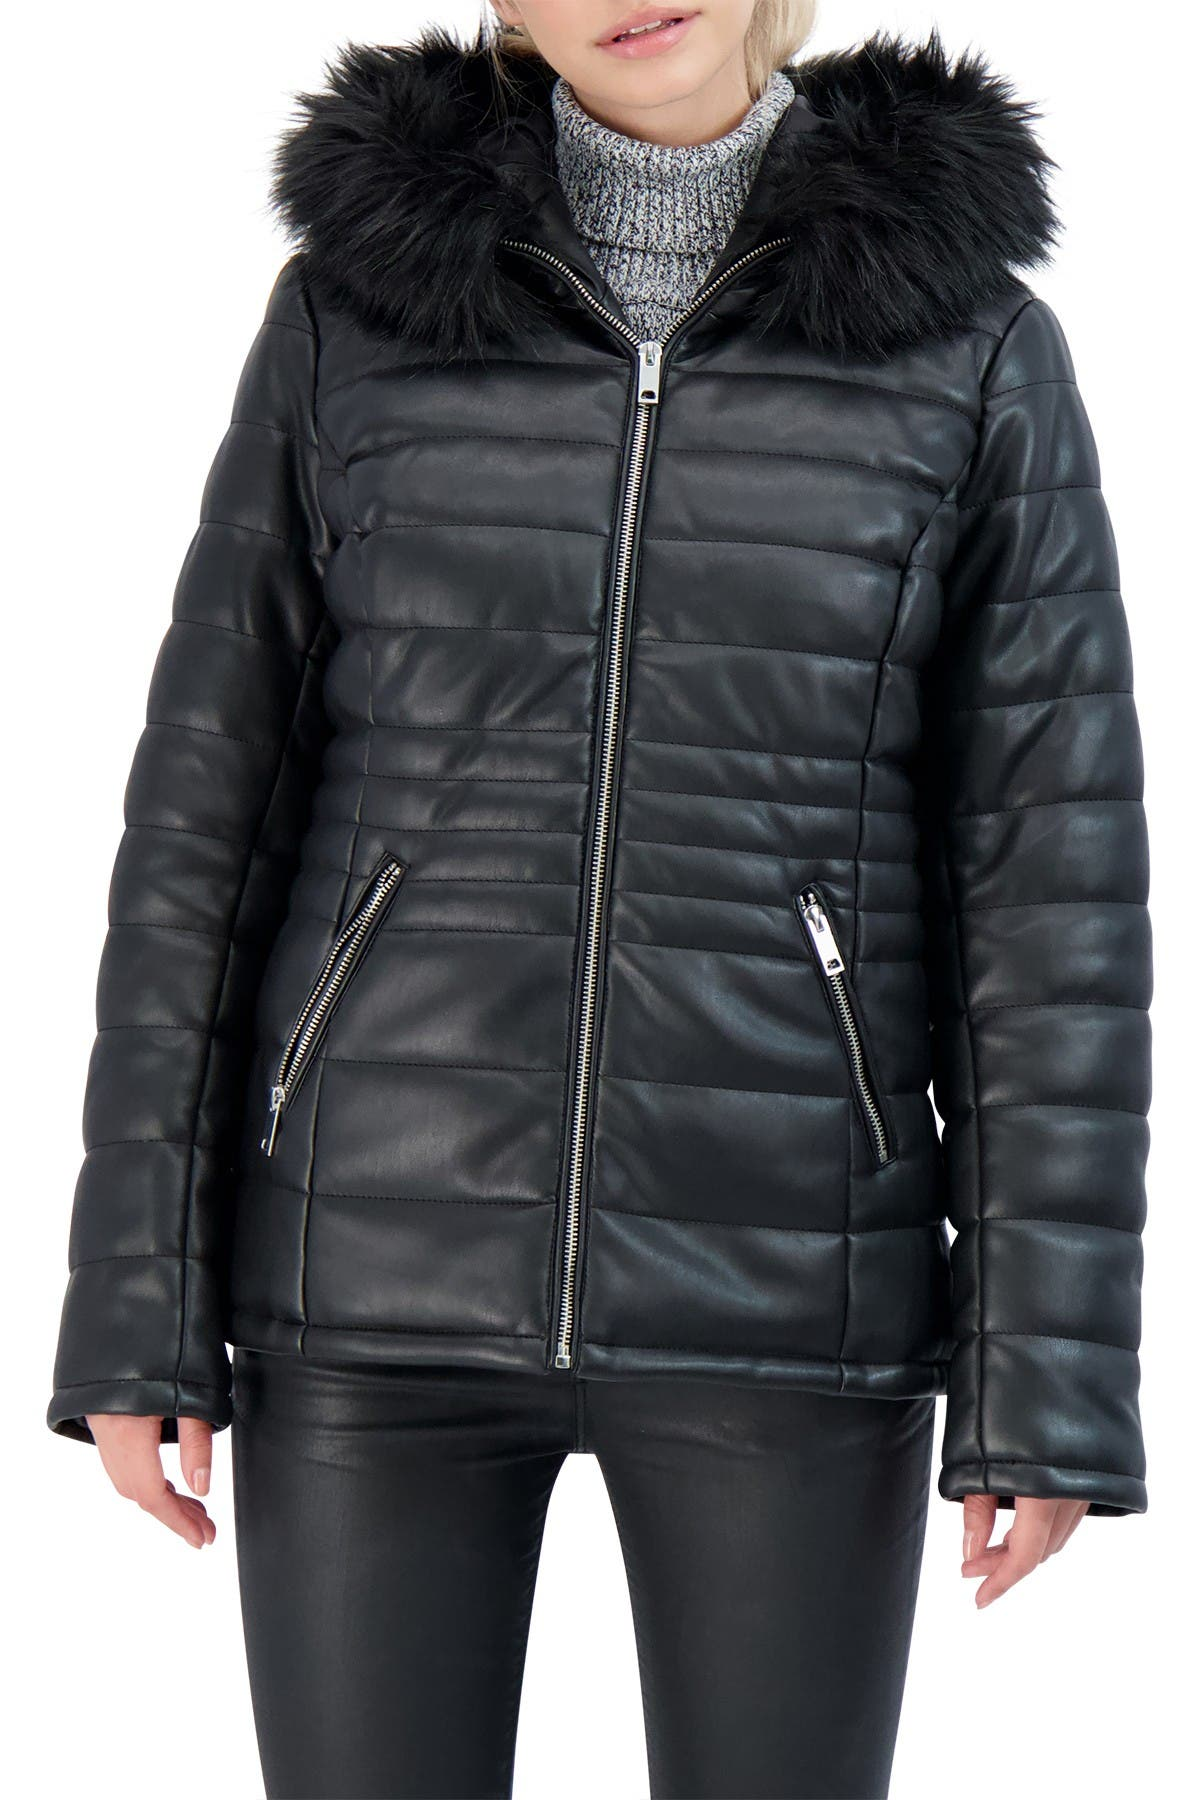 Sebby Collection Faux Leather Hooded Puffer Jacket